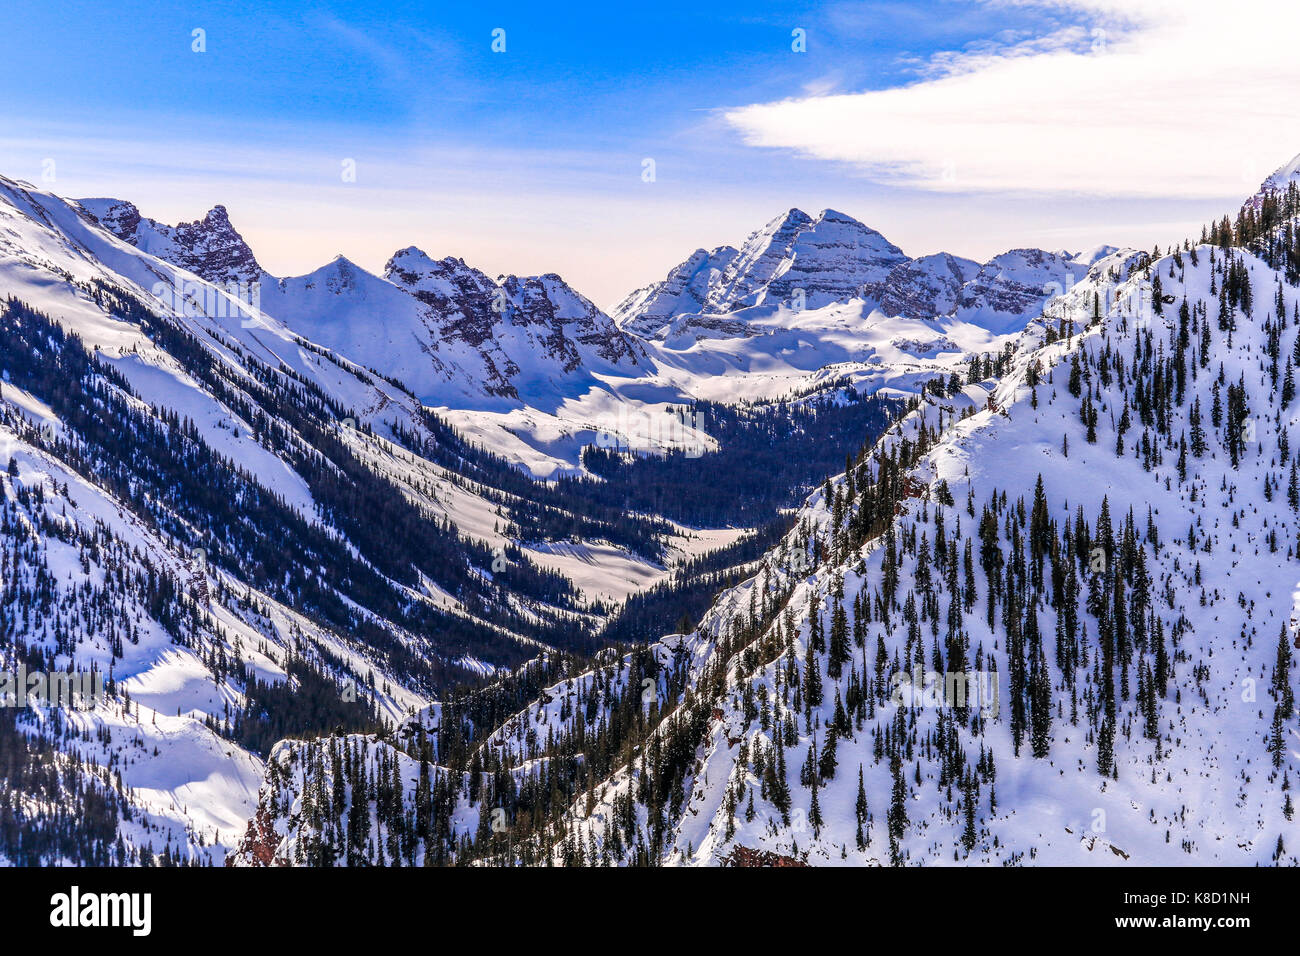 View of the mountain peaks in the Maroon Bells Snowmass